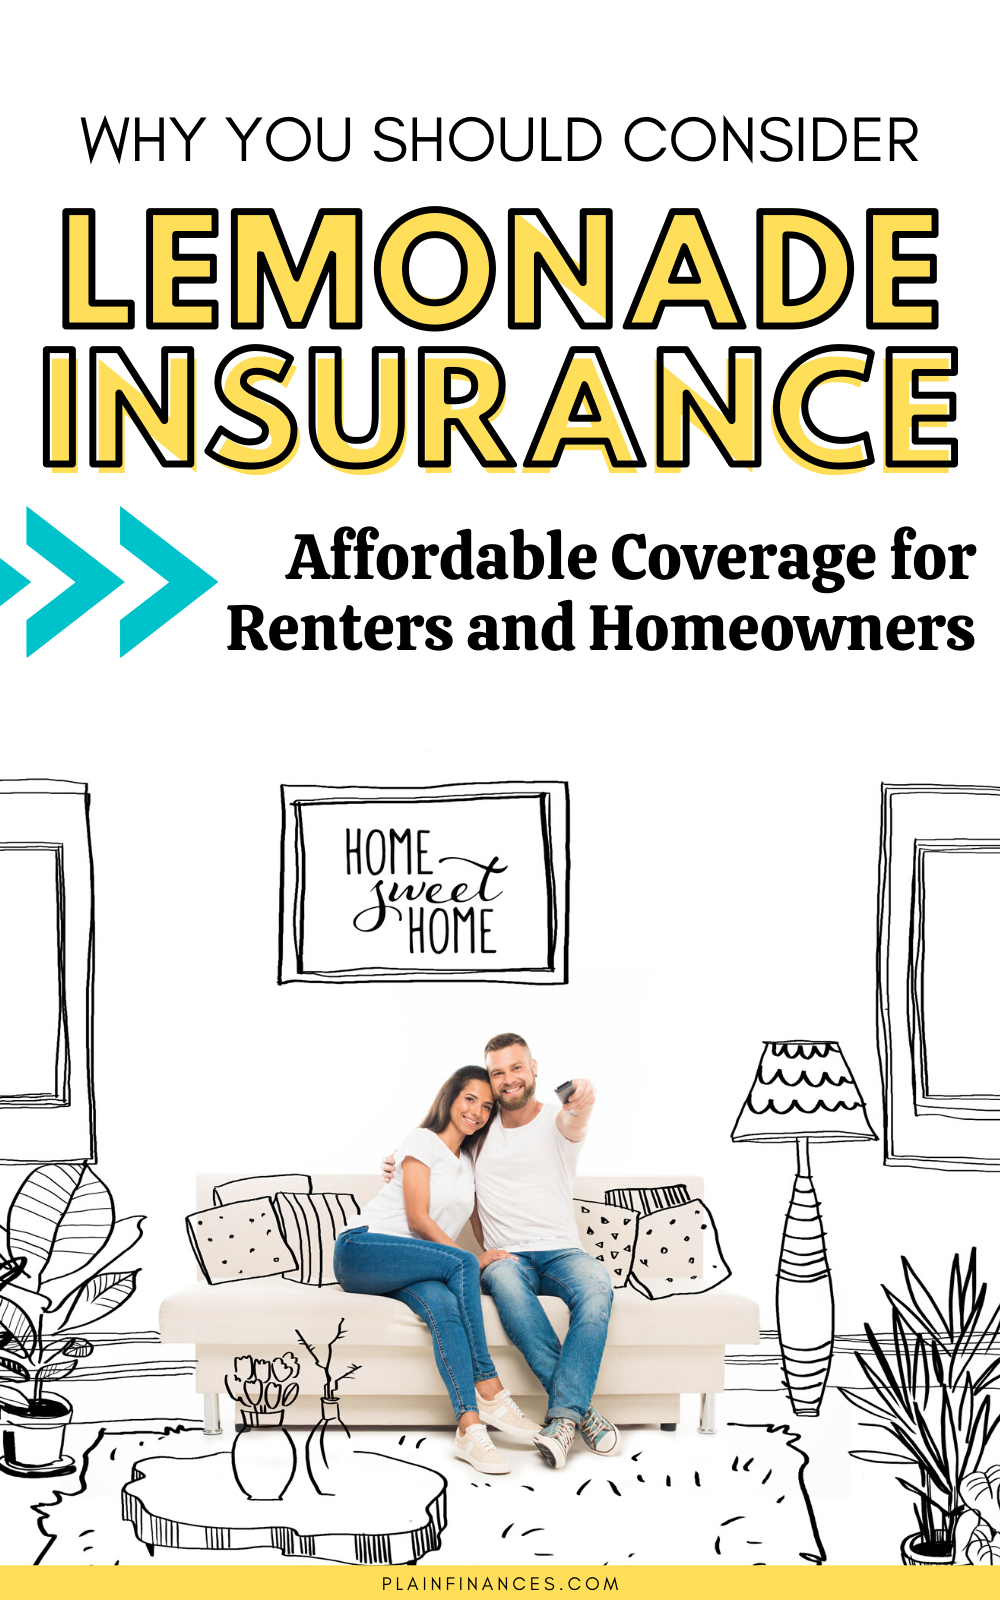 Lemonade Insurance Review: Affordable Coverage for Renters and Homeowners | Personal Finance